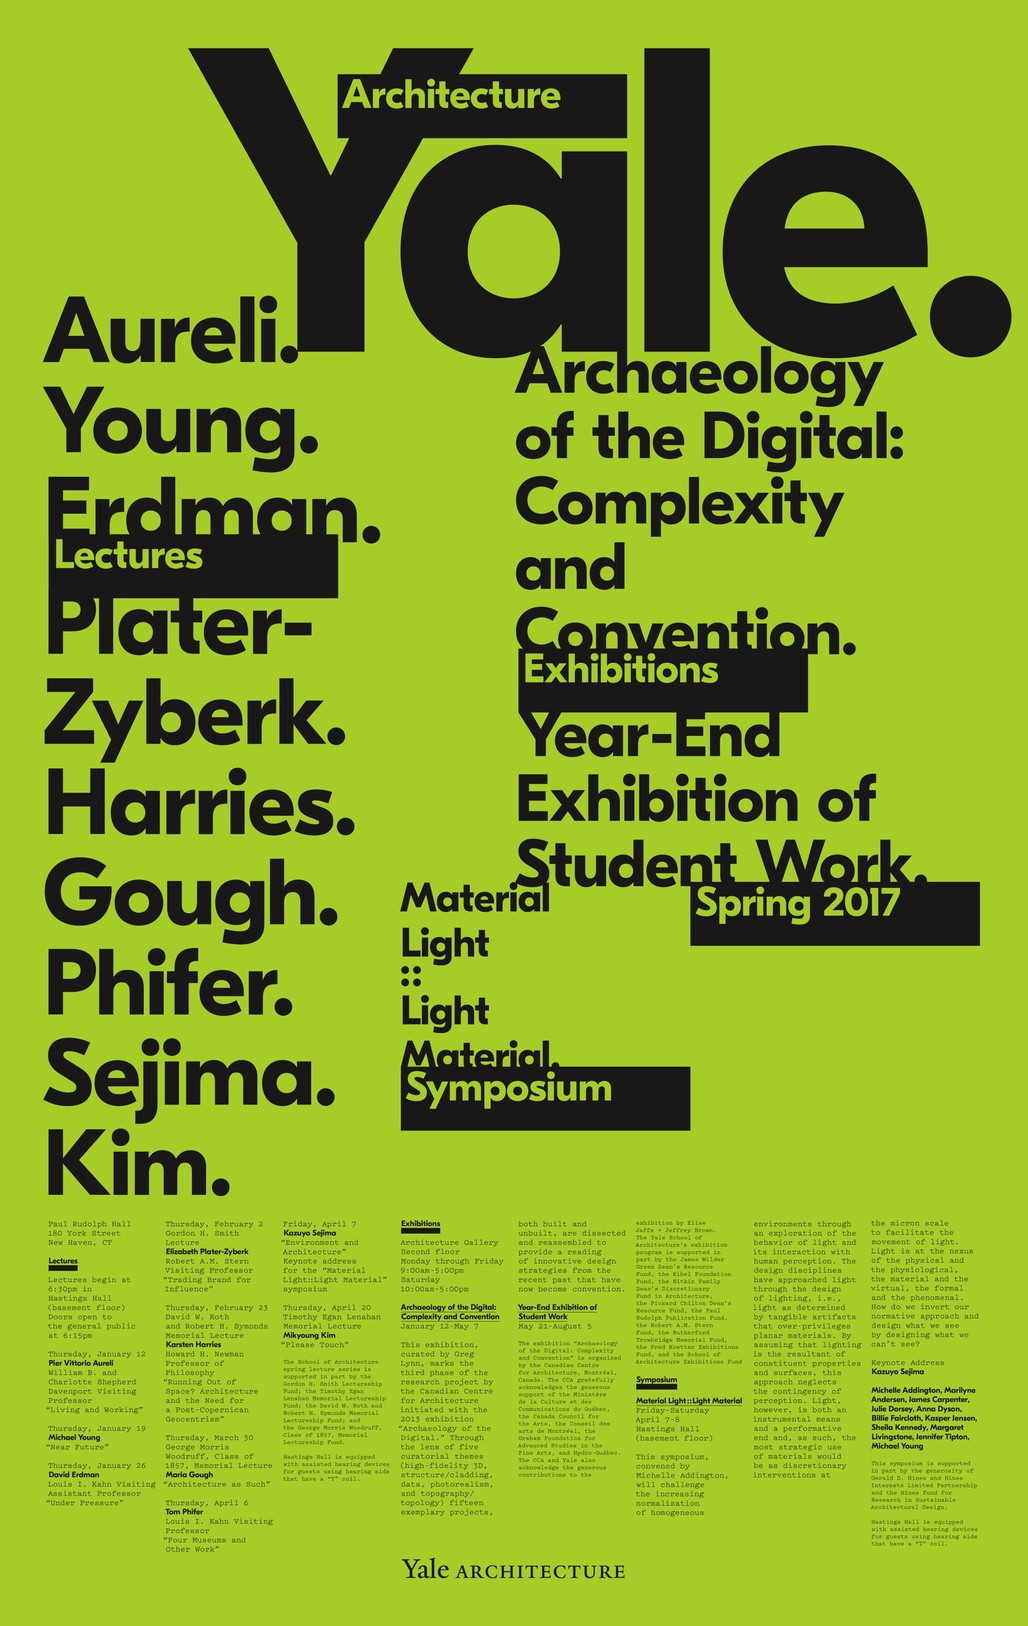 Poster designed by Pentagram. Courtesy of Yale School of Architecture.